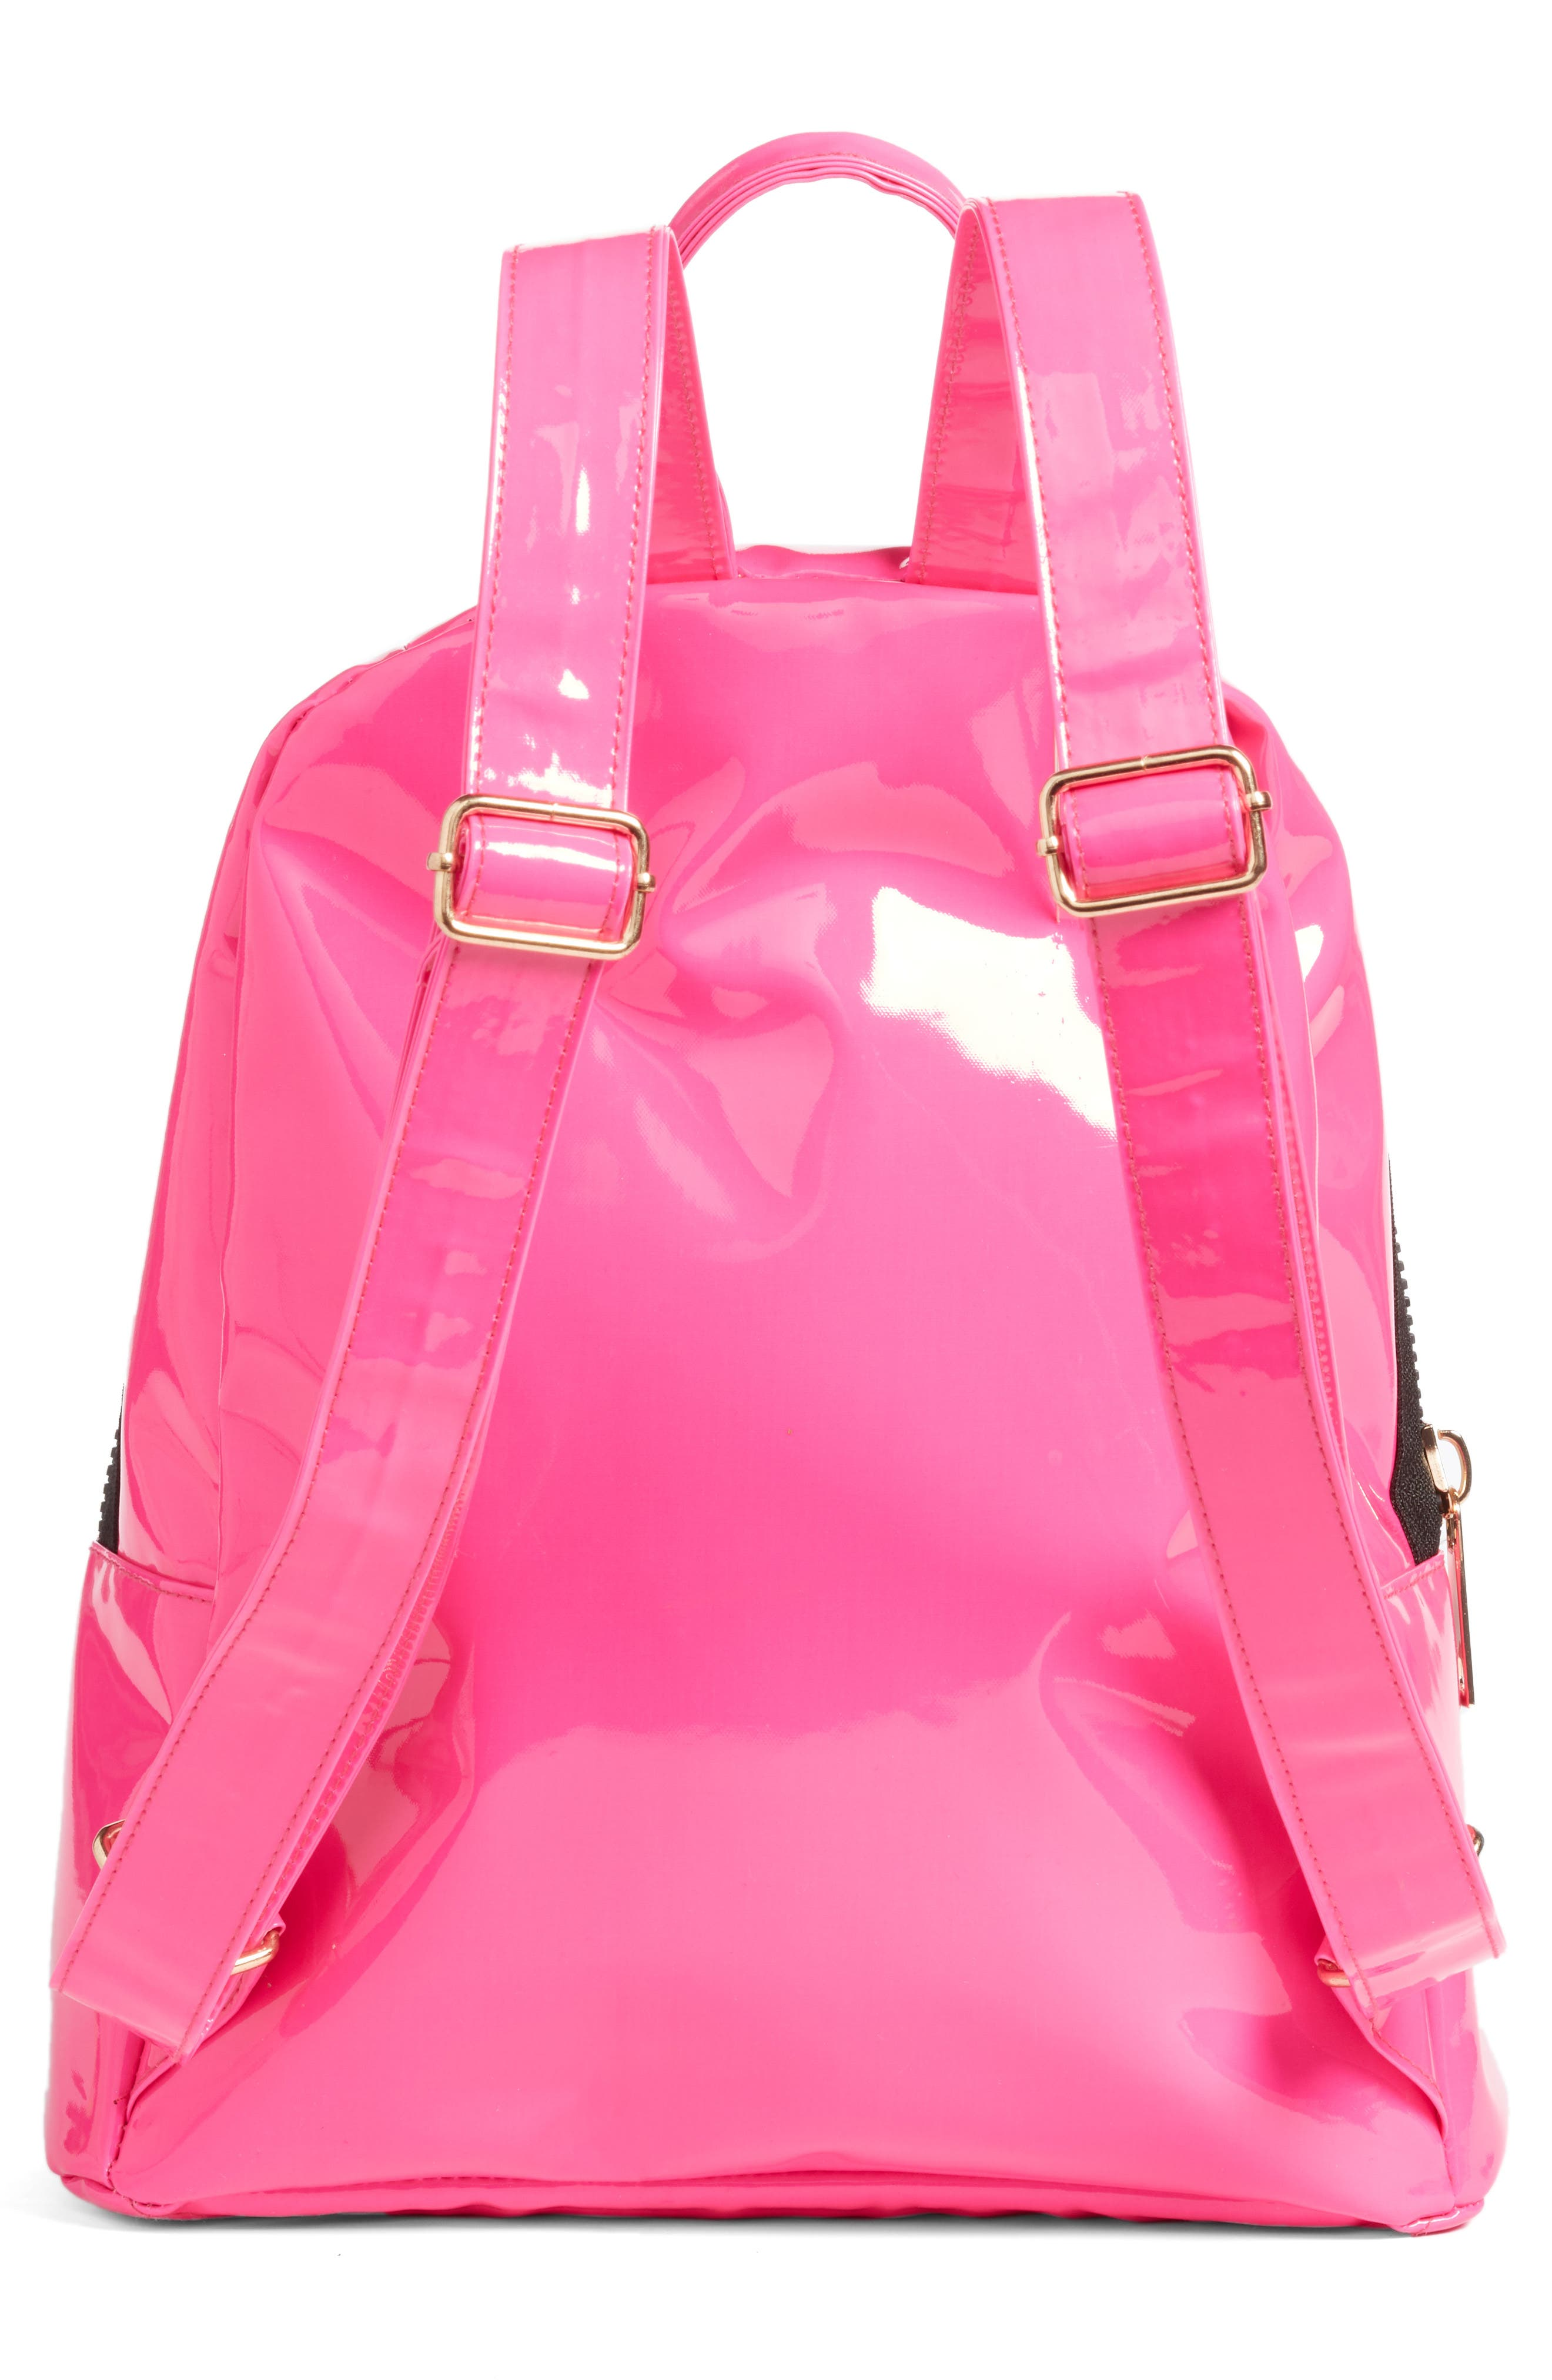 JANE & BERRY, Double Zip Faux Patent Leather Backpack, Alternate thumbnail 3, color, PINK